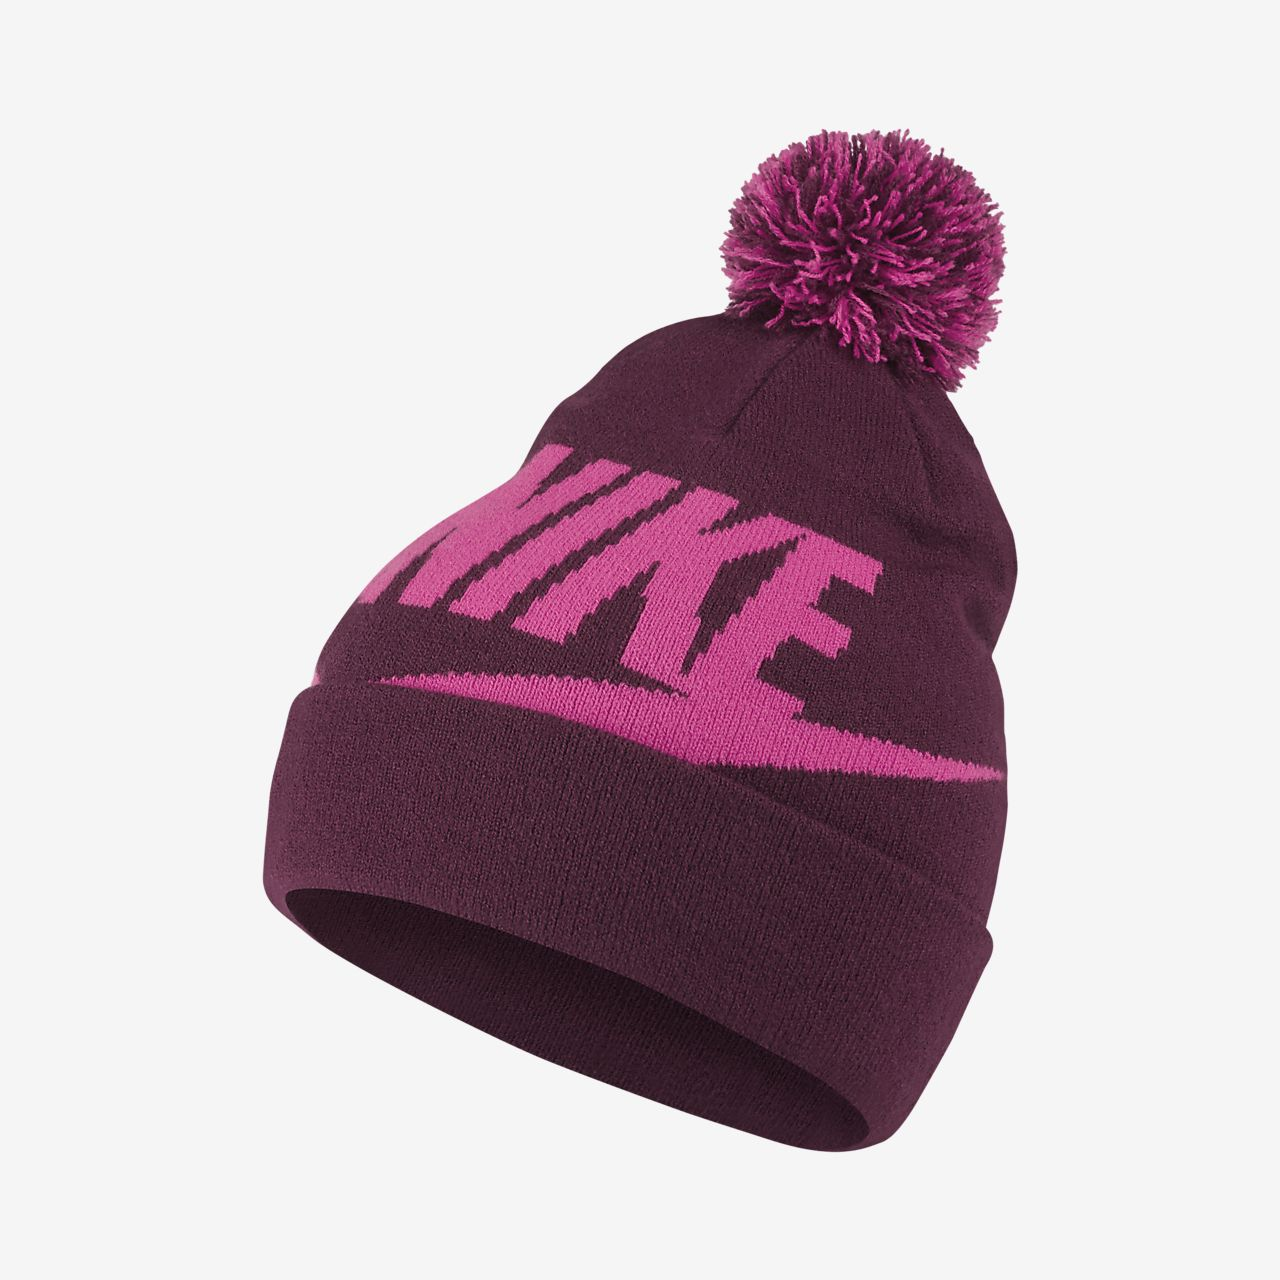 ... Nike Sportswear Pom Beanie Older Kids' Knit Hat